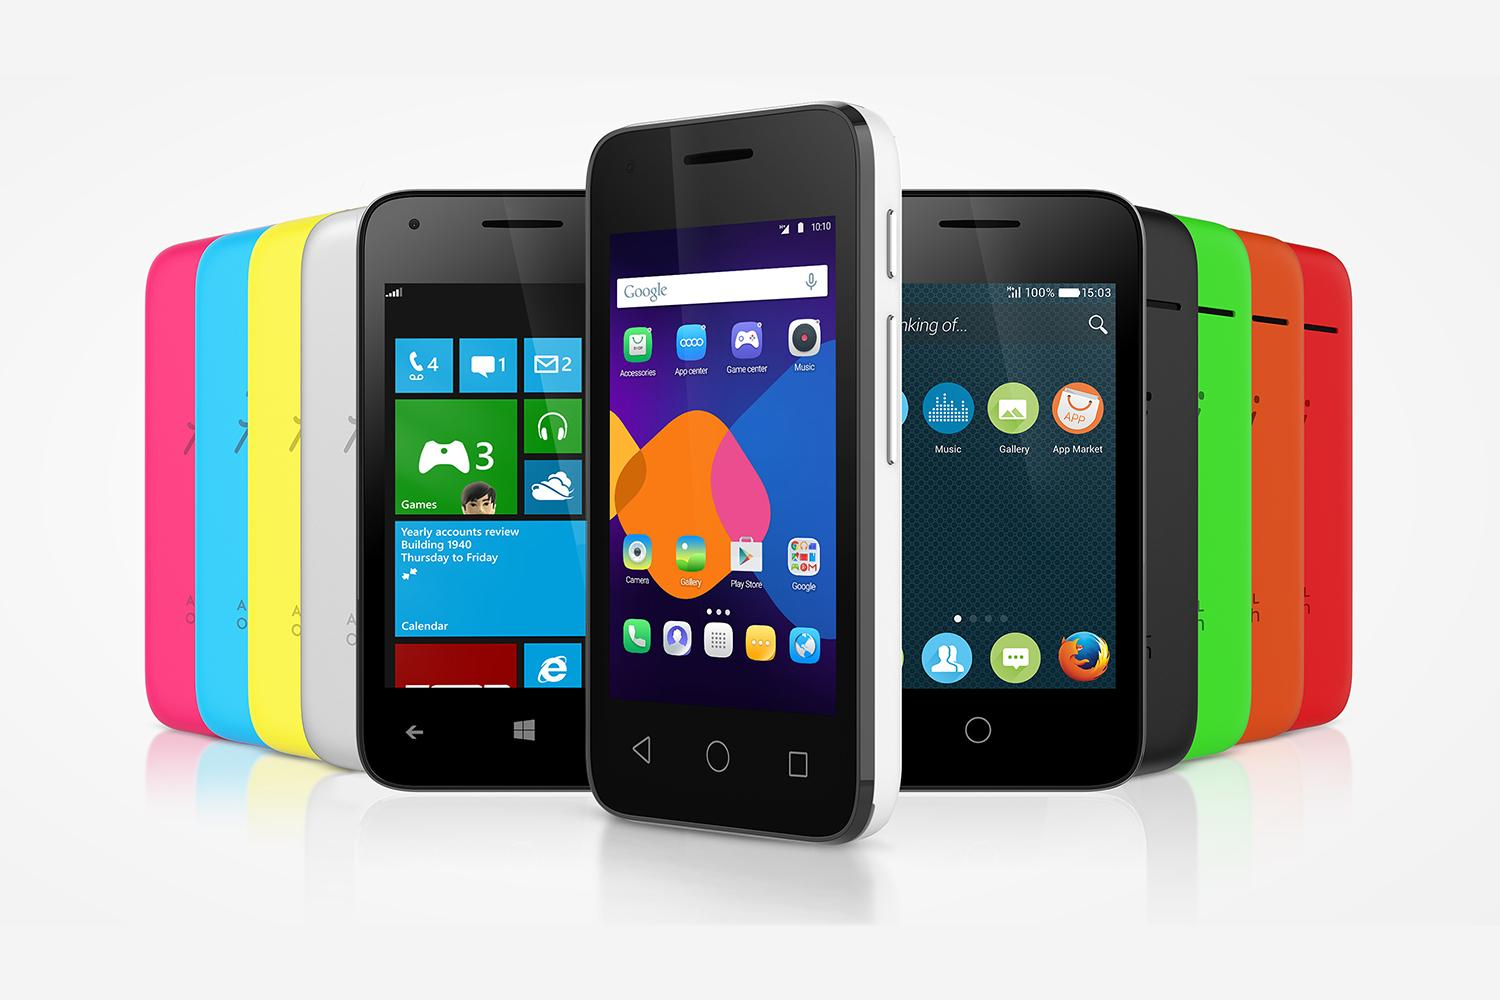 alcatel onetouch pixi 3 phones give you a choice of os digital trends. Black Bedroom Furniture Sets. Home Design Ideas